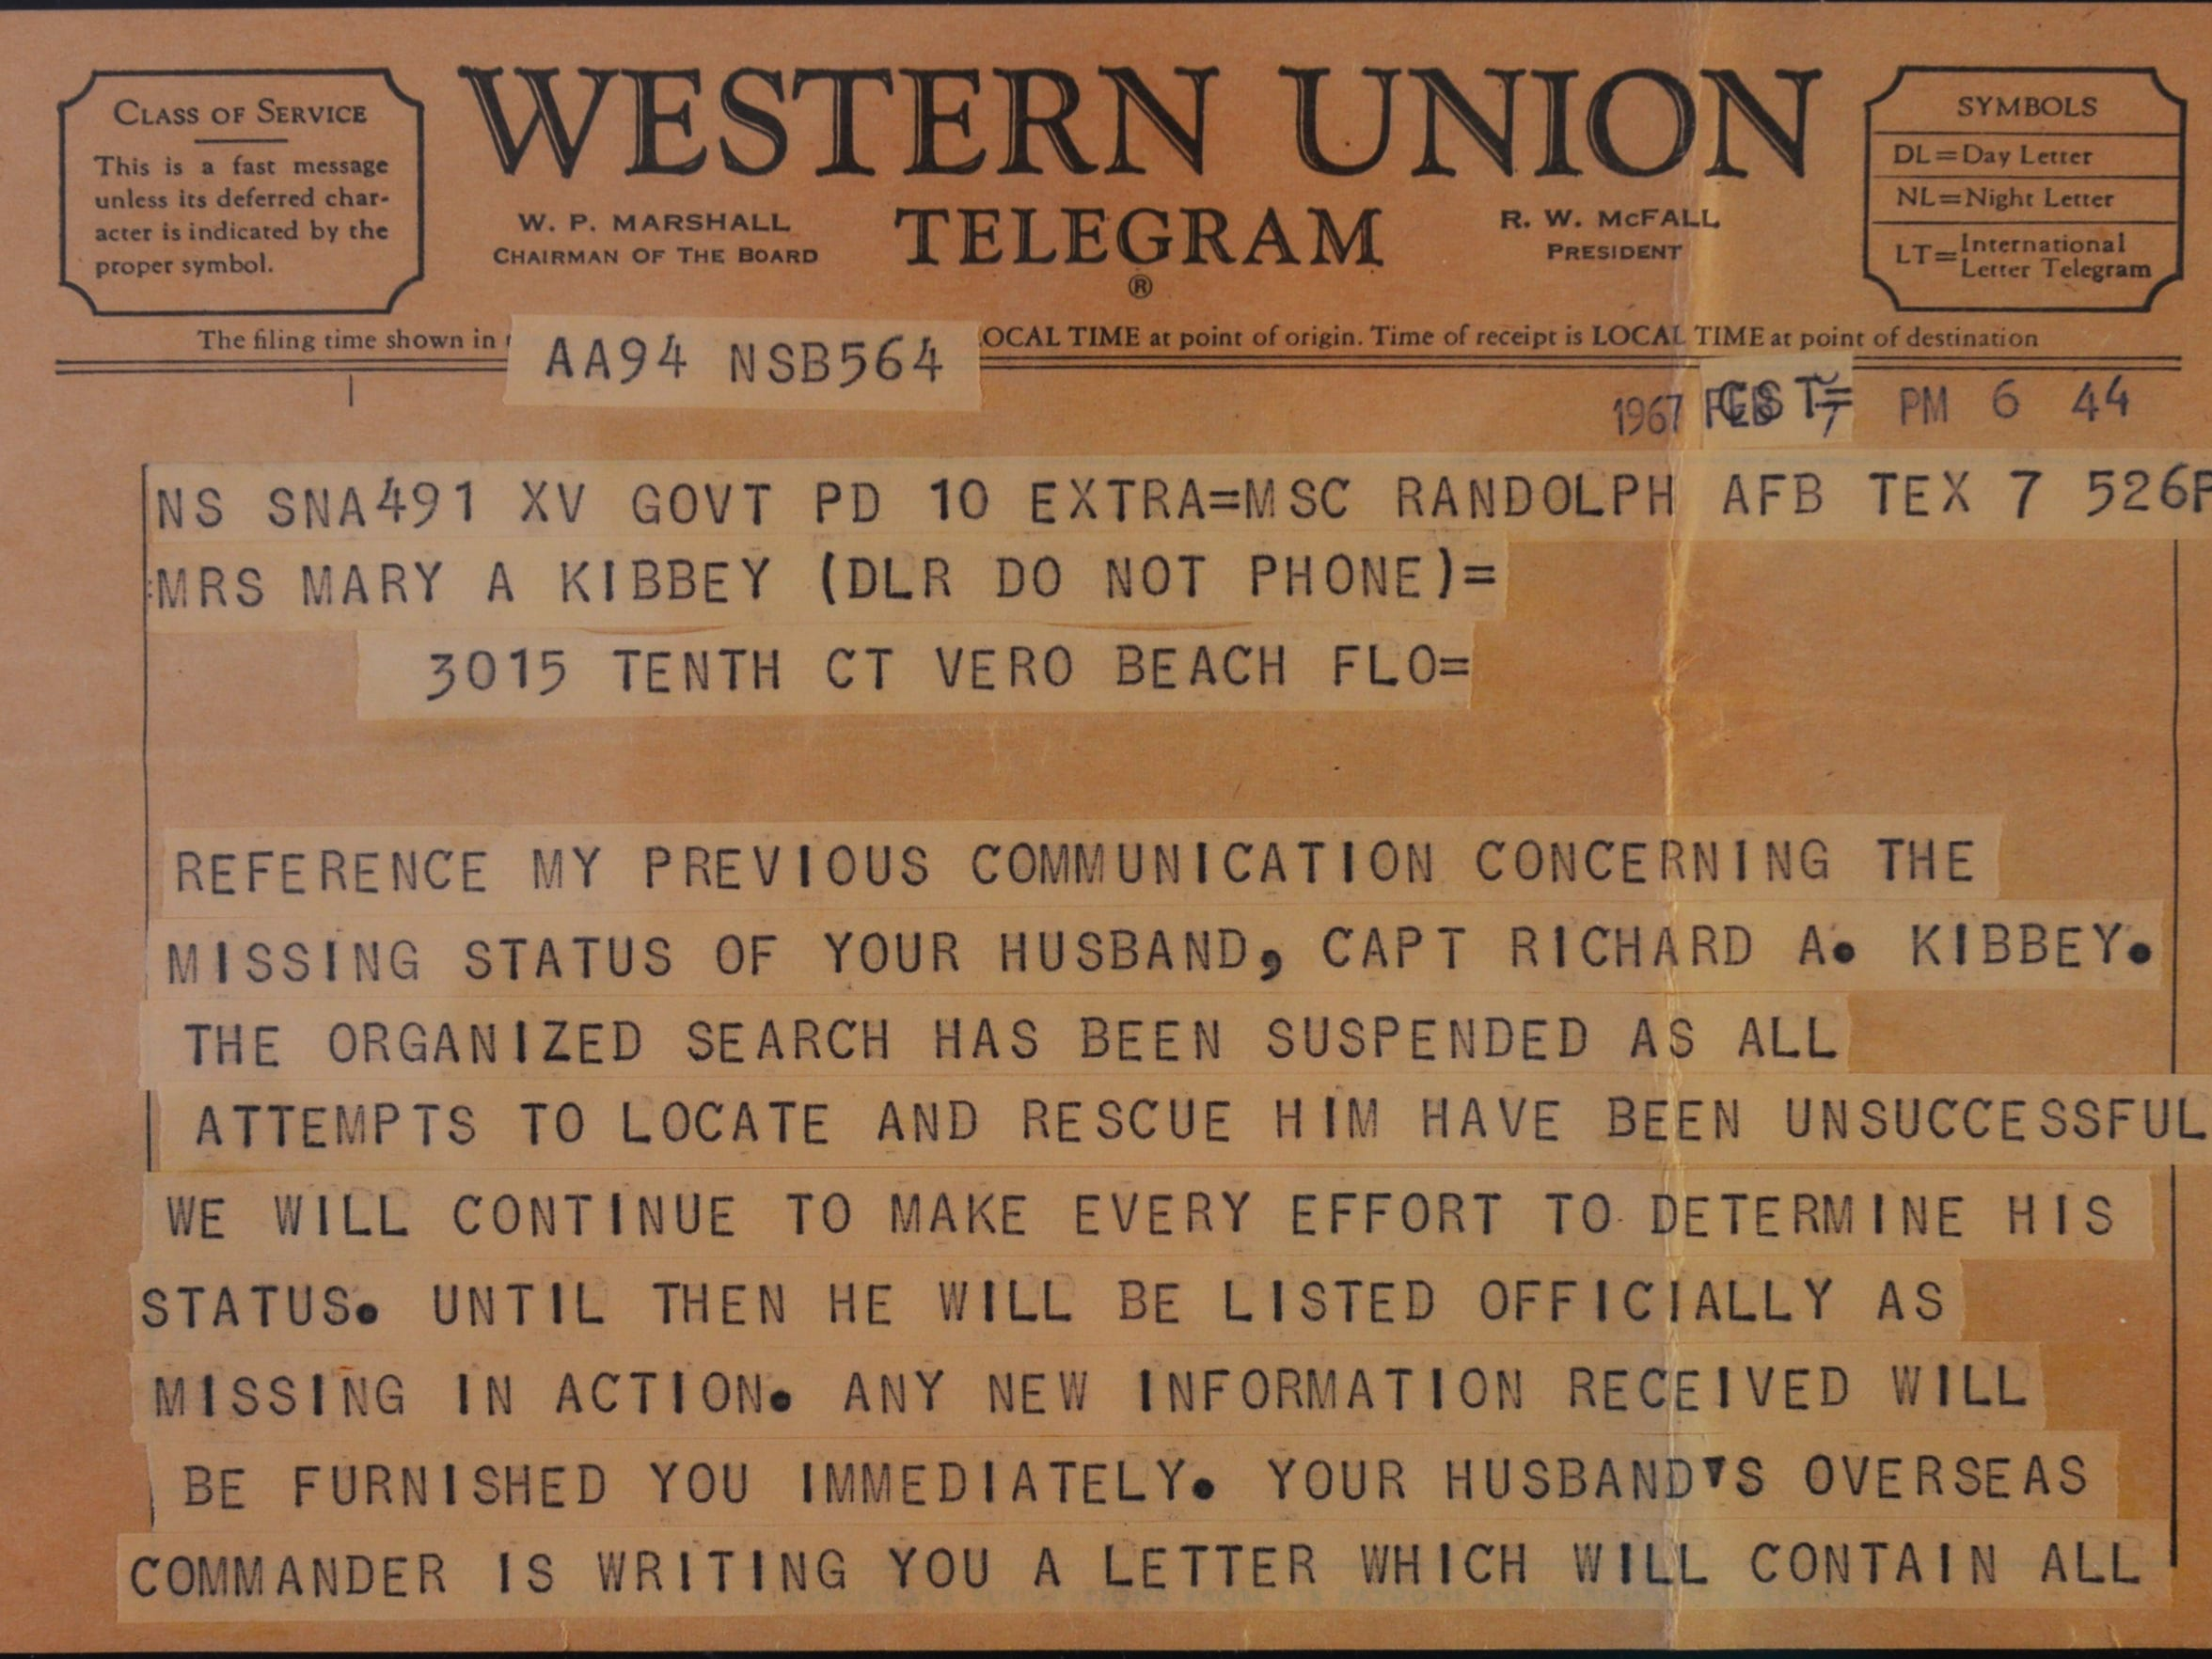 Mary Ann Kibbey received this telegram on Feb. 7, 1967,